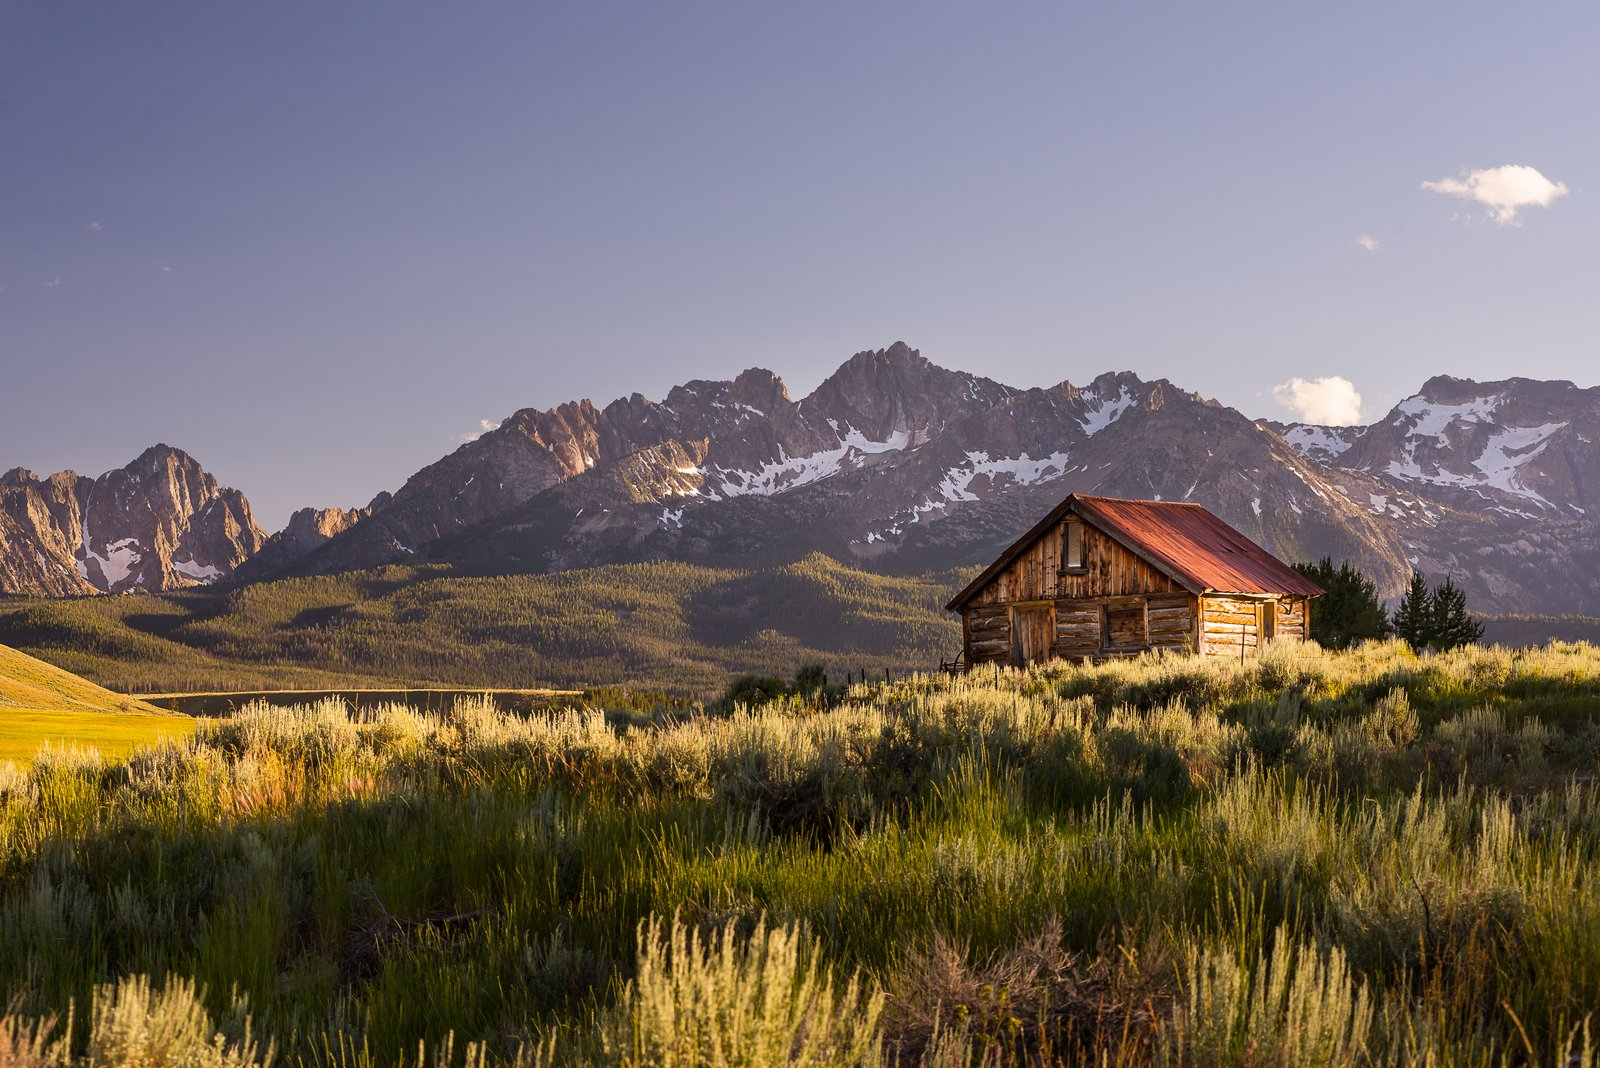 Evening light in the Sawtooth mountains of Idaho. Who wouldn't want to have a cabin here?  Cabins & Hideouts by Stephen Blake from Art and Architechture